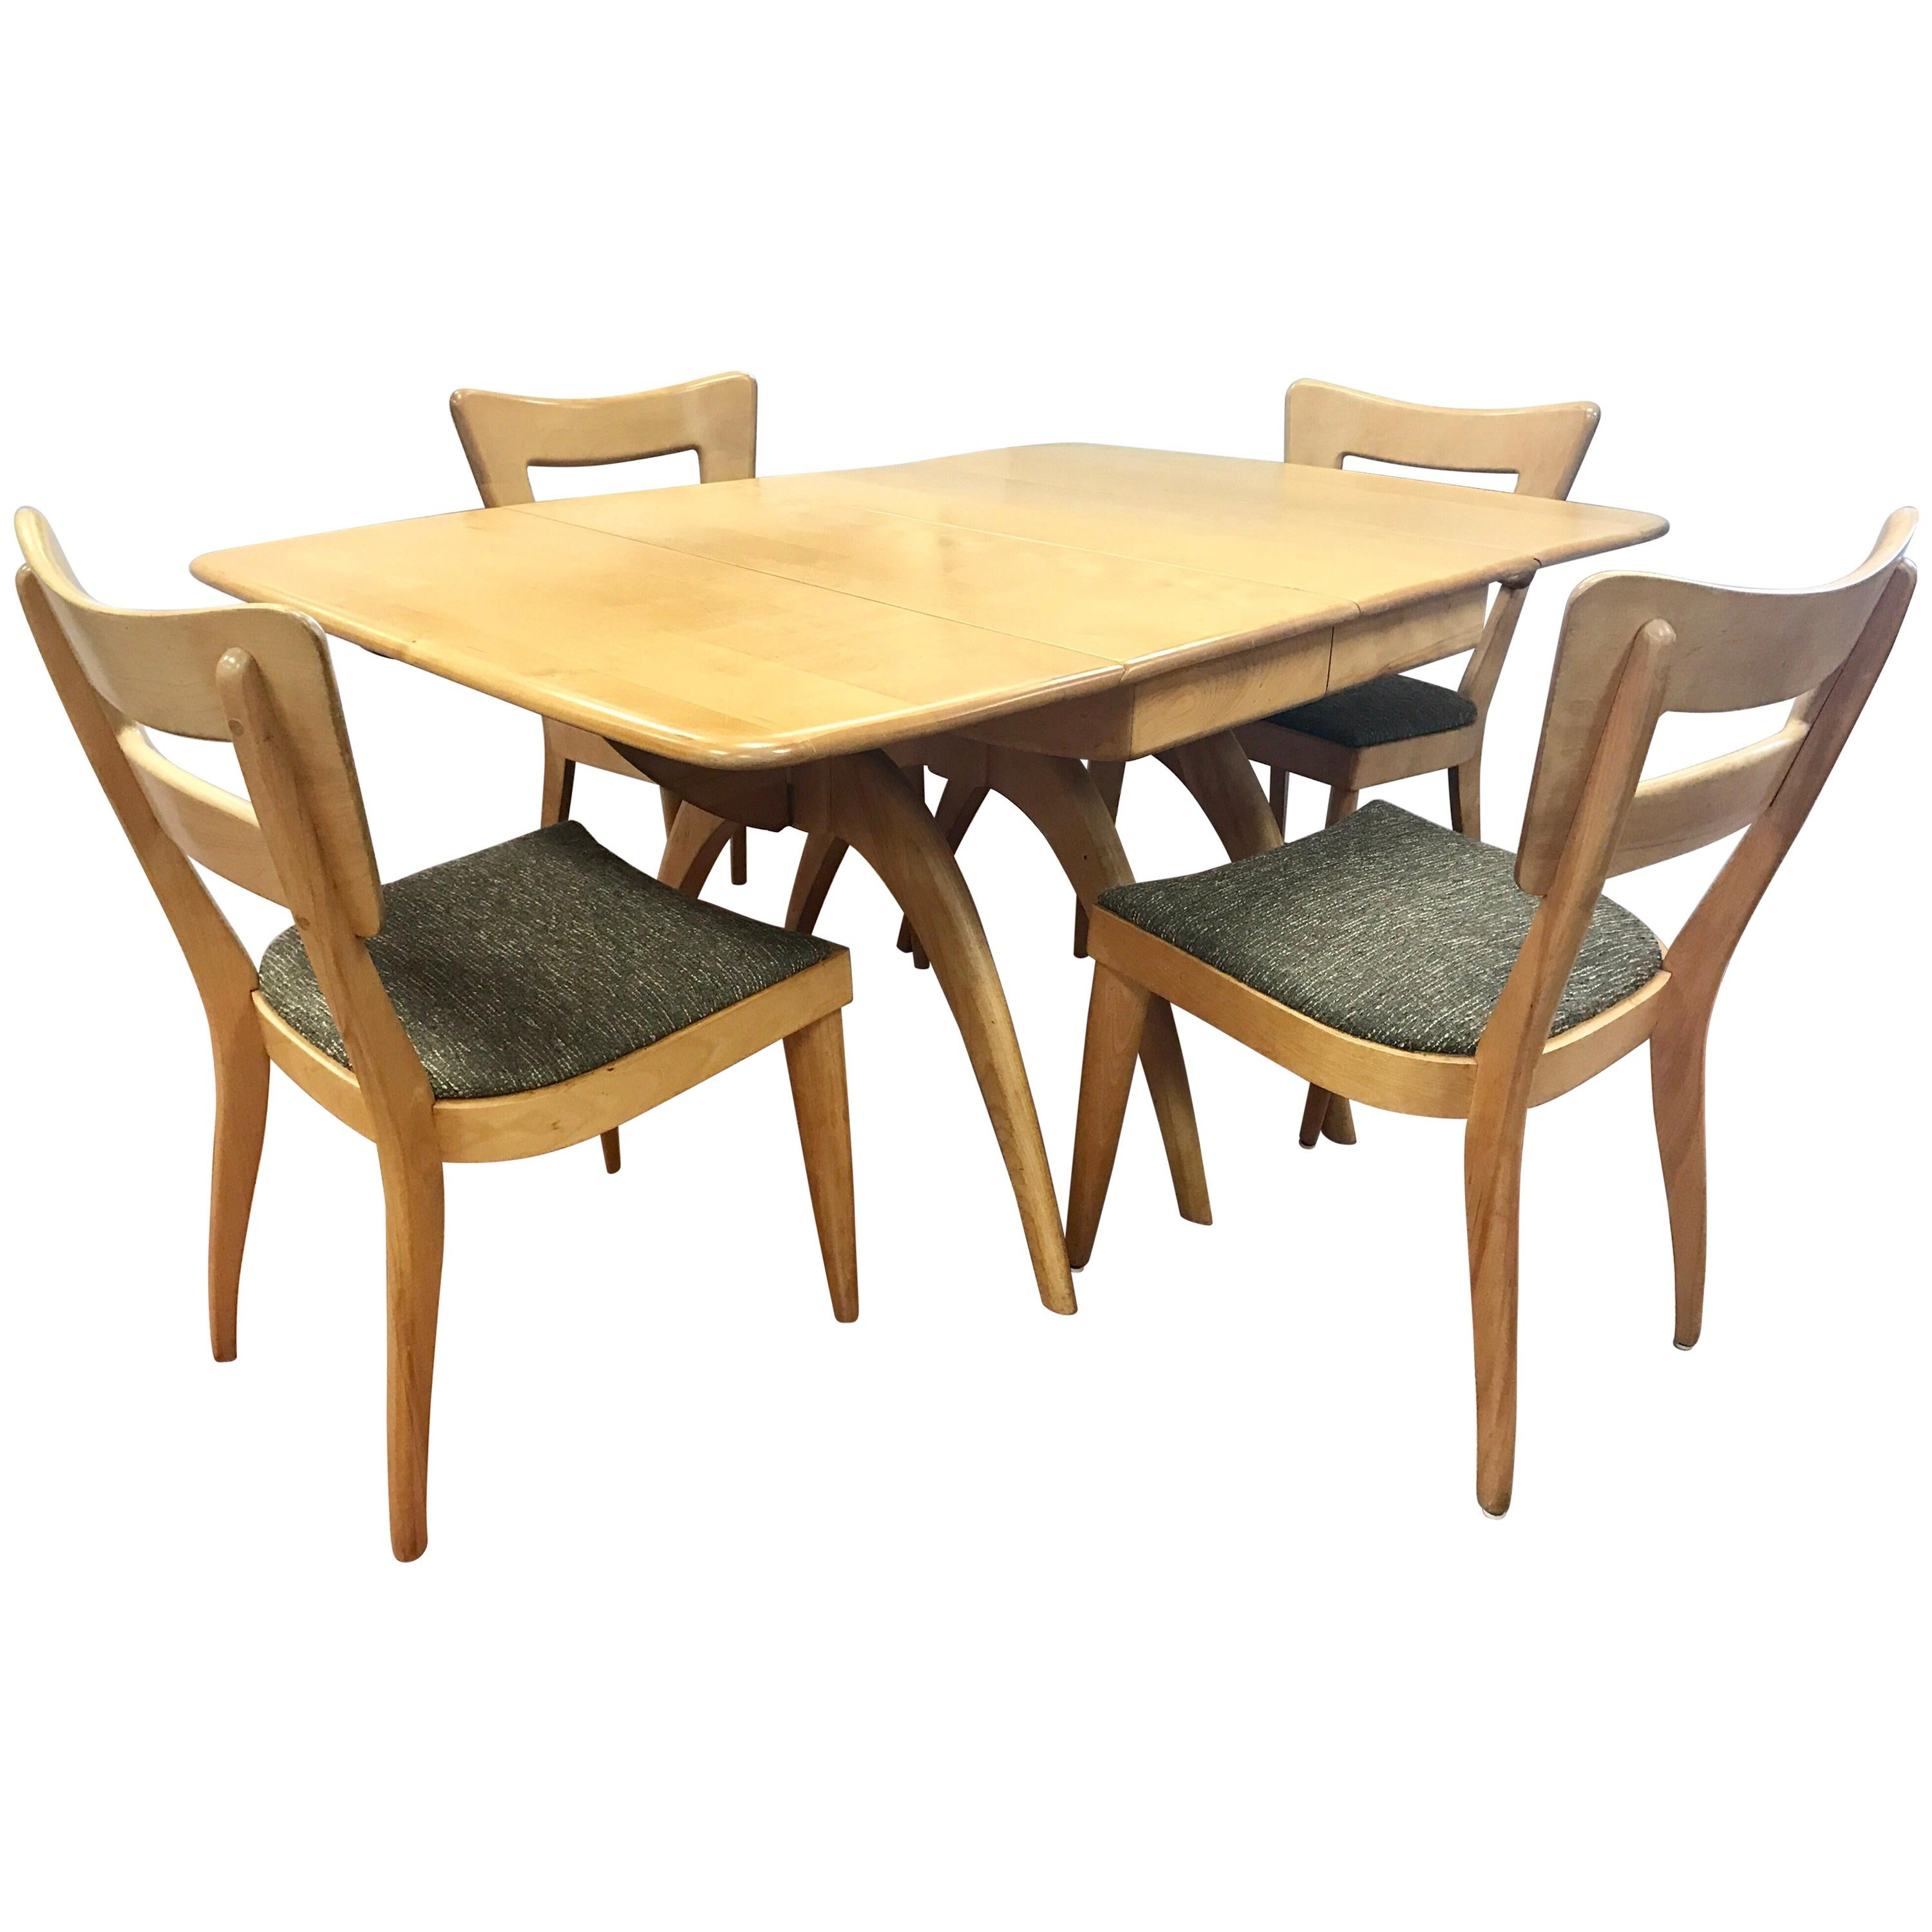 Heywood Wakefield Dining Set Champagne Boomerang Dining Table Dog Bone  Chairs For Sale